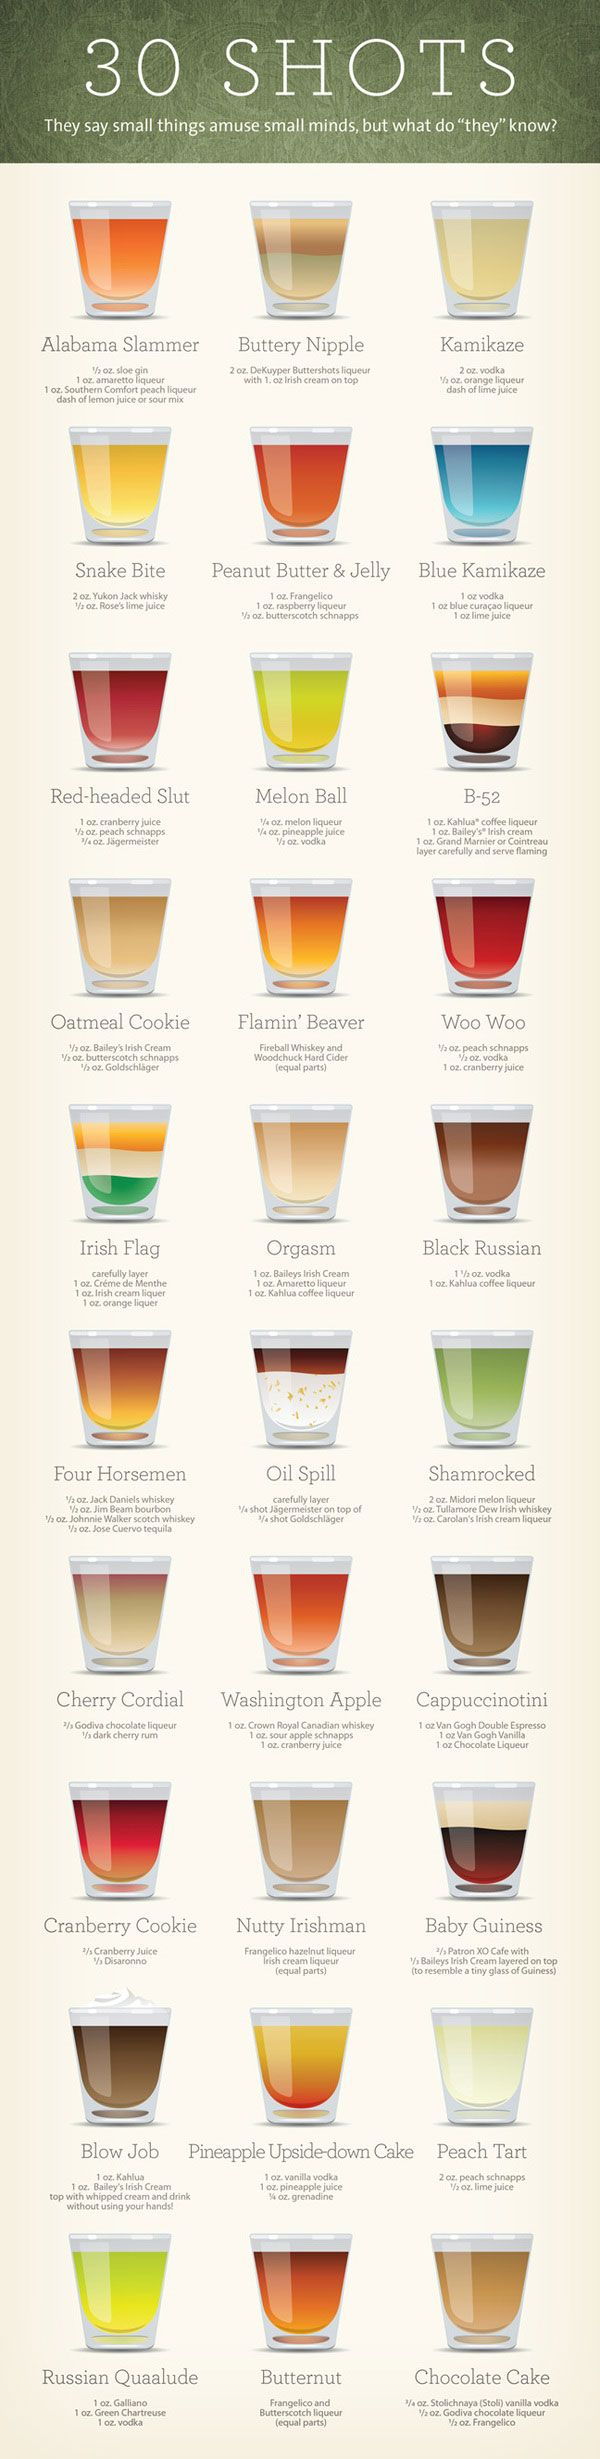 A look at a wide ranging mix of different #shots in this colorful #infographic from the designer #DonaldBullach - http://www.finedininglovers.com/blog/food-drinks/how-many-shots-have-you-tried/